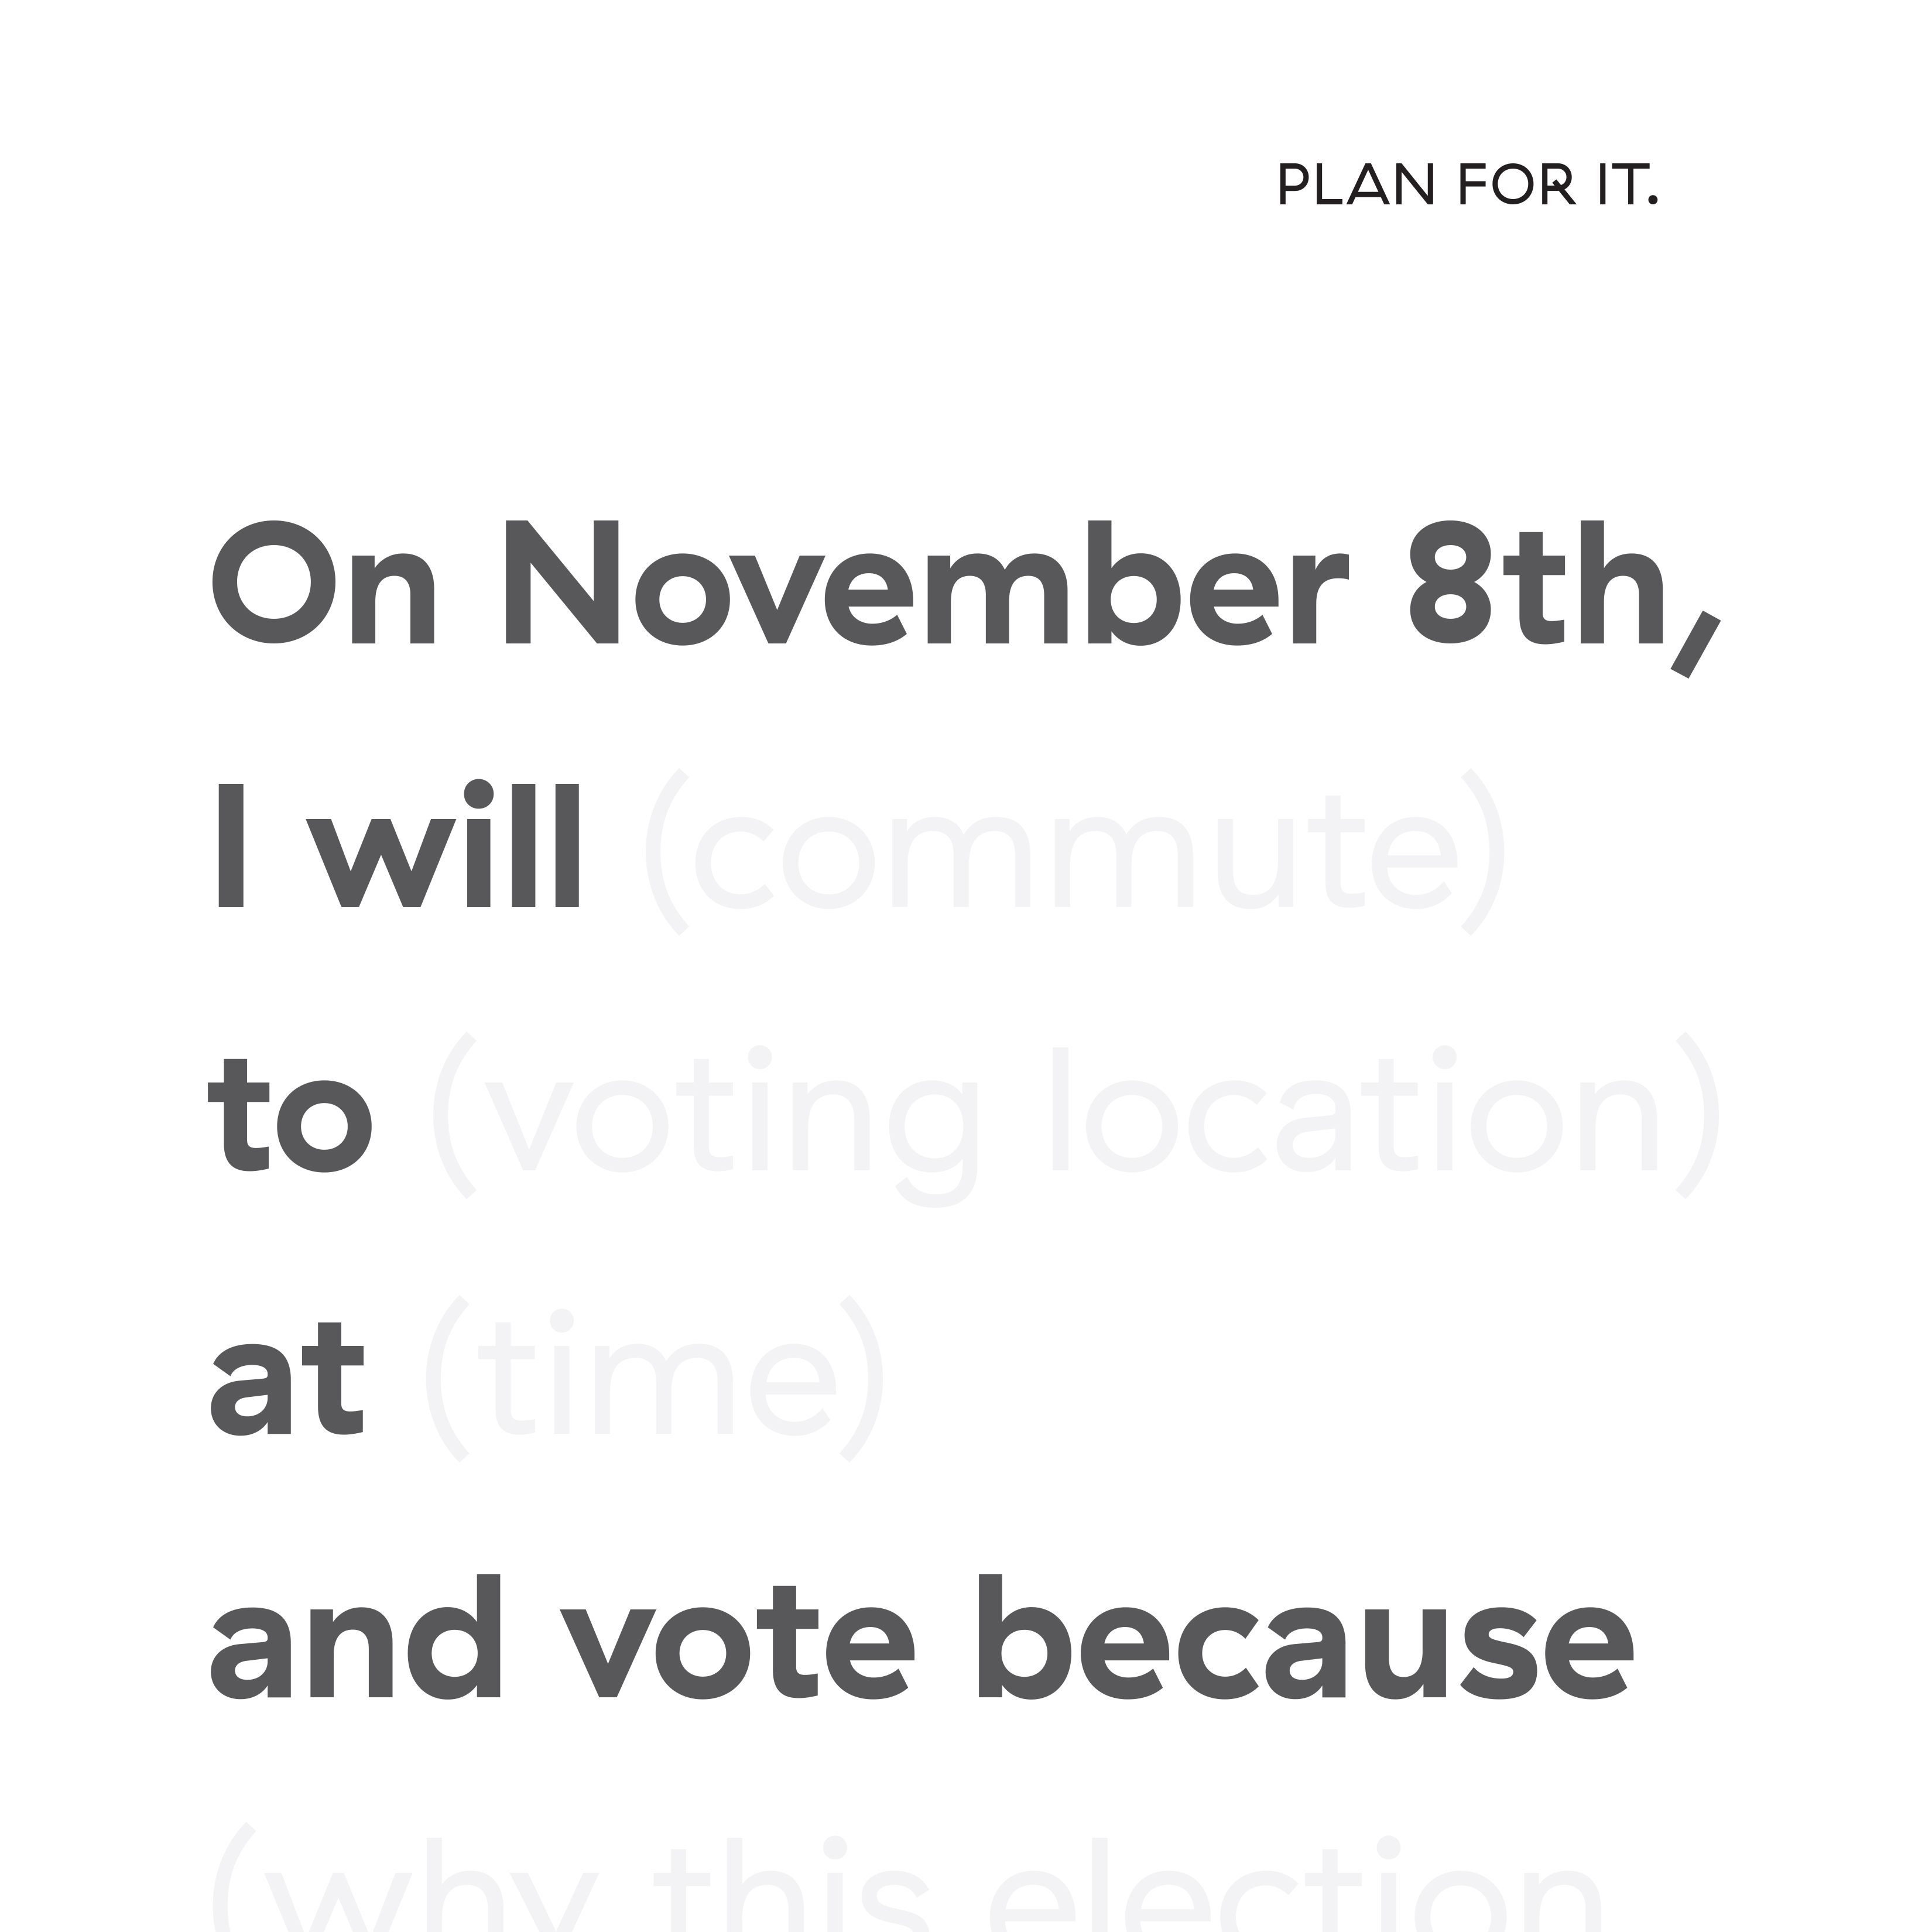 Plan for It.